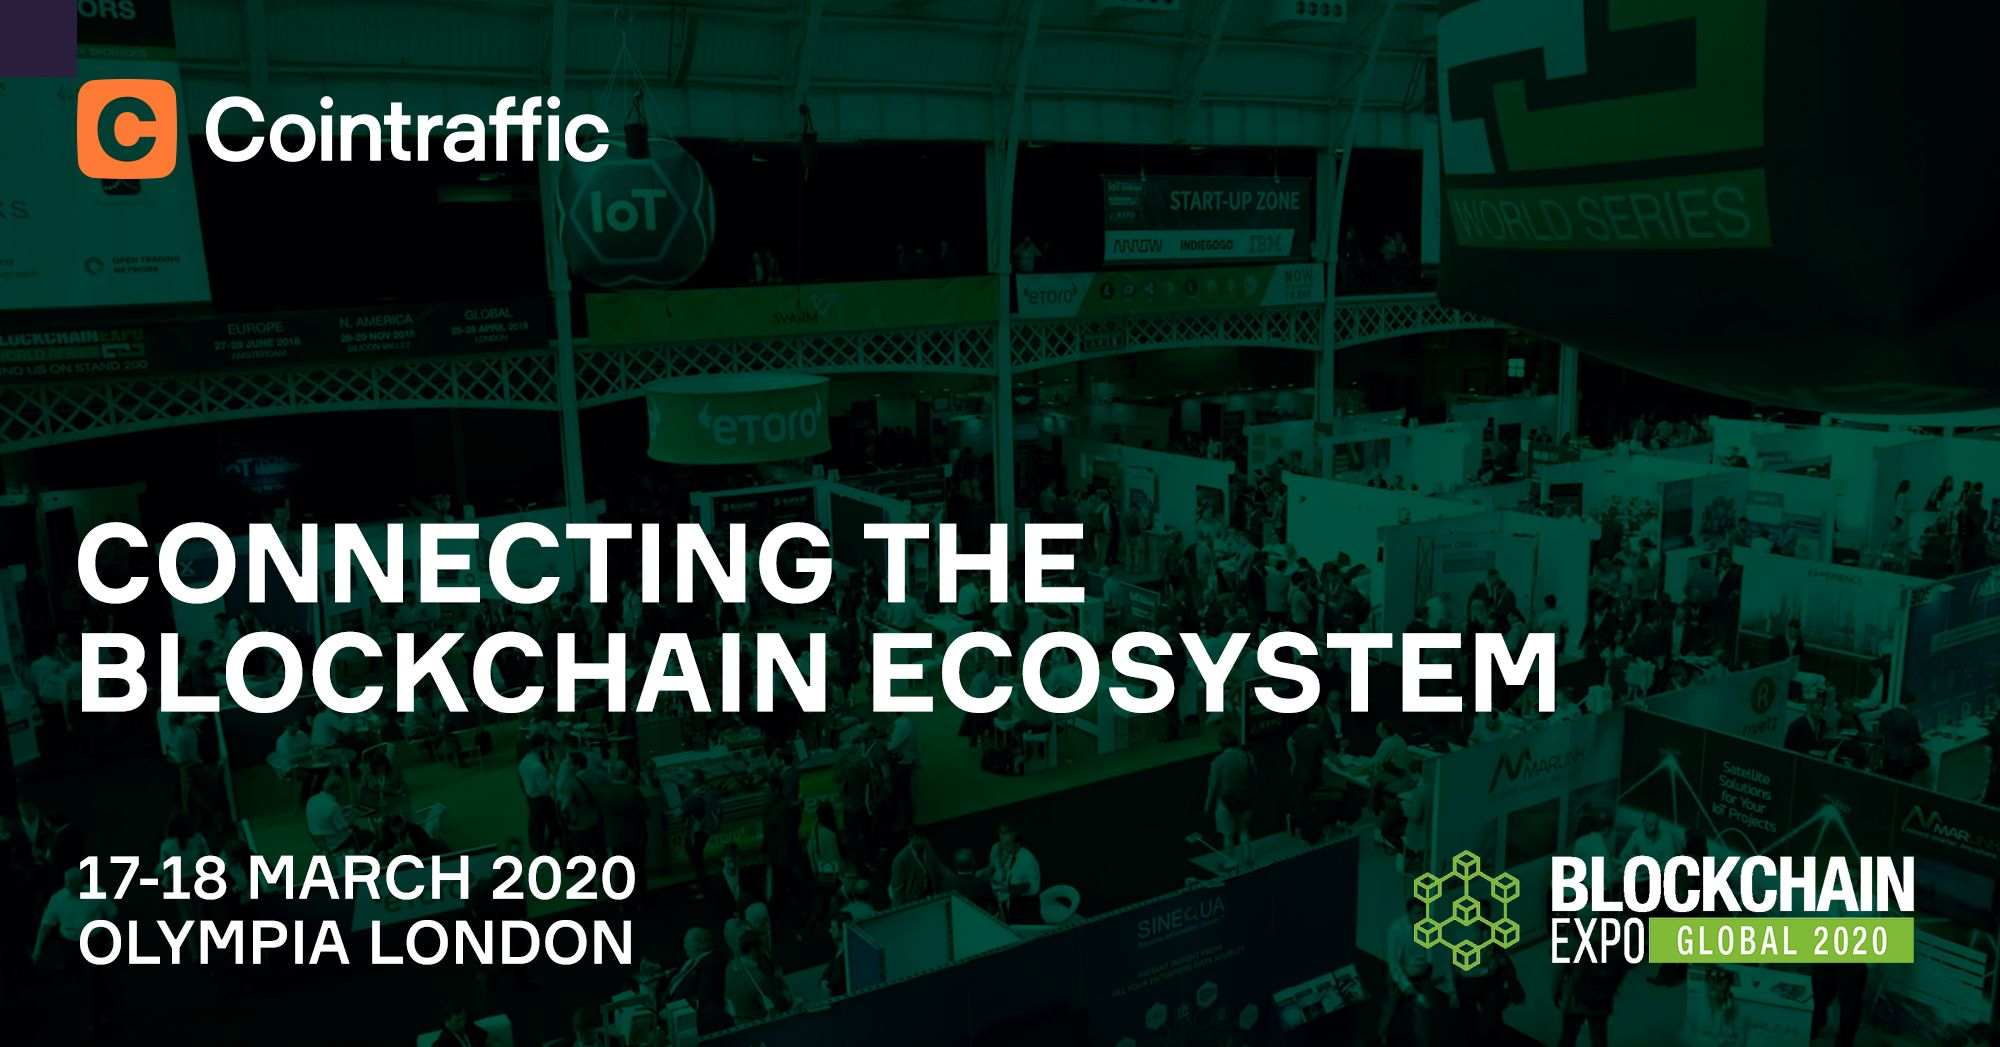 Cointraffic to Attend Blockchain Expo Global 2020